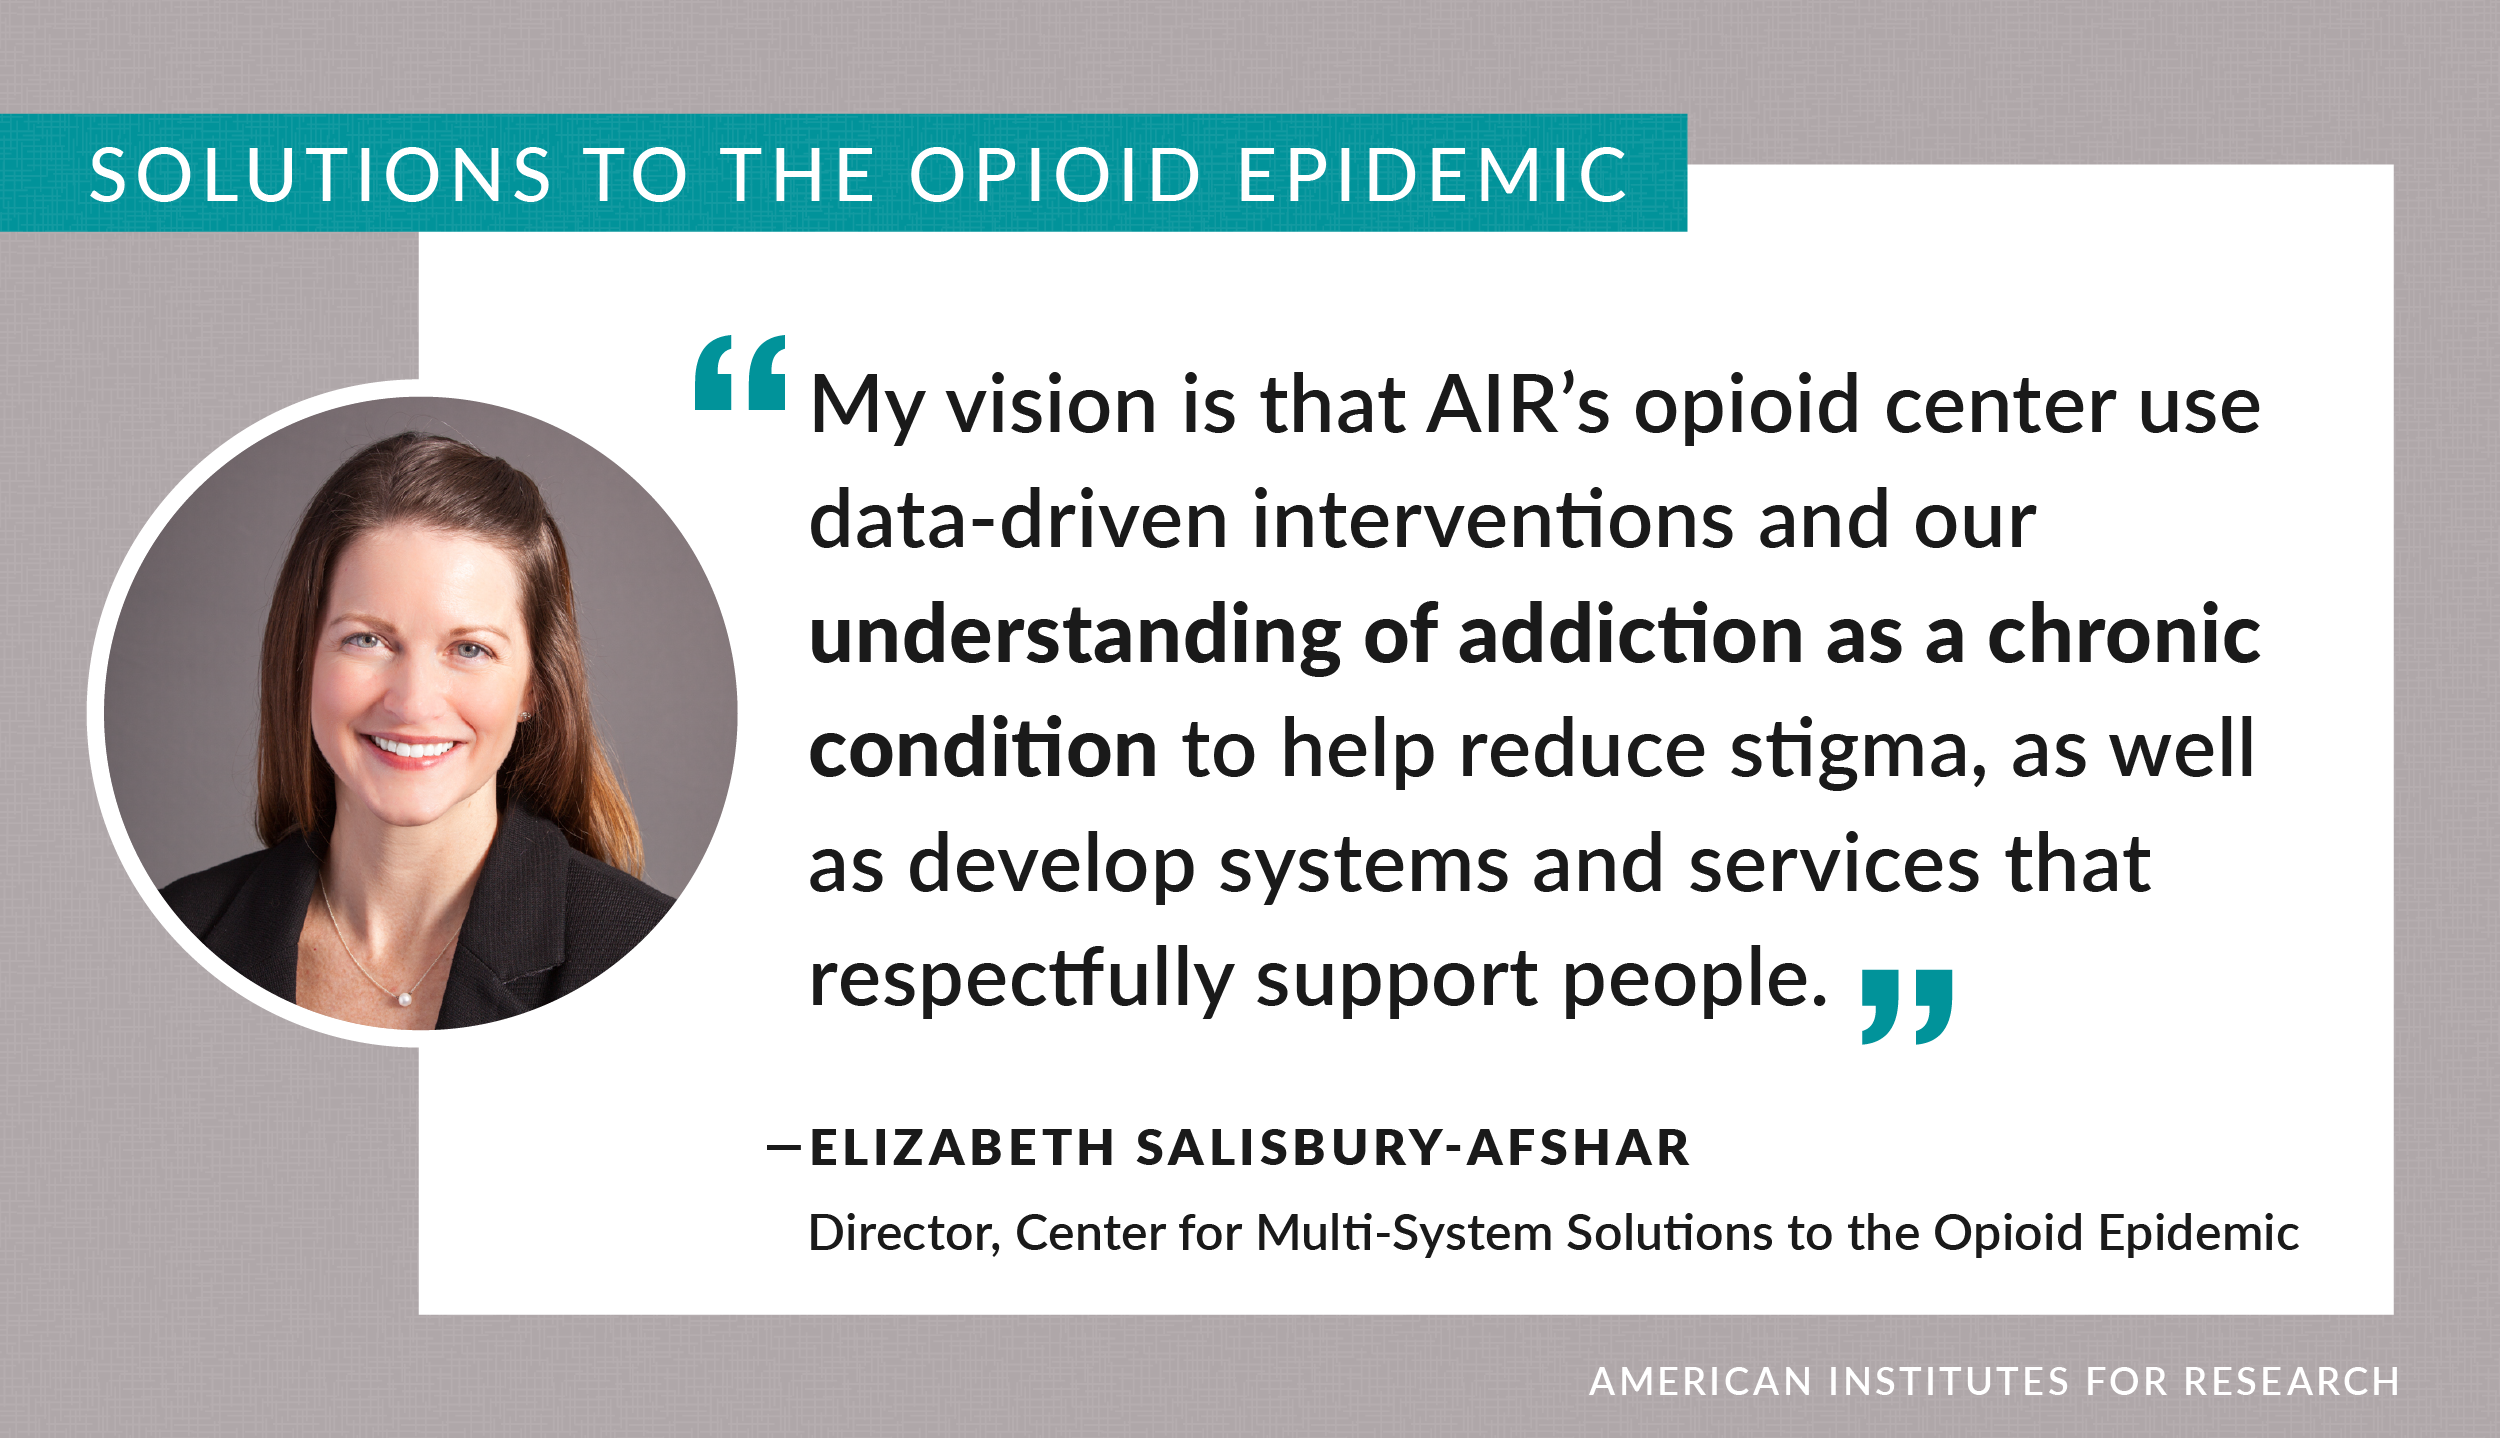 Quote: My vision is that AIR's opioid center use data-driven interventions and our understanding of addiction as a chronic condition to help reduce stigma, as well as develop systems and services that respectfully support people.